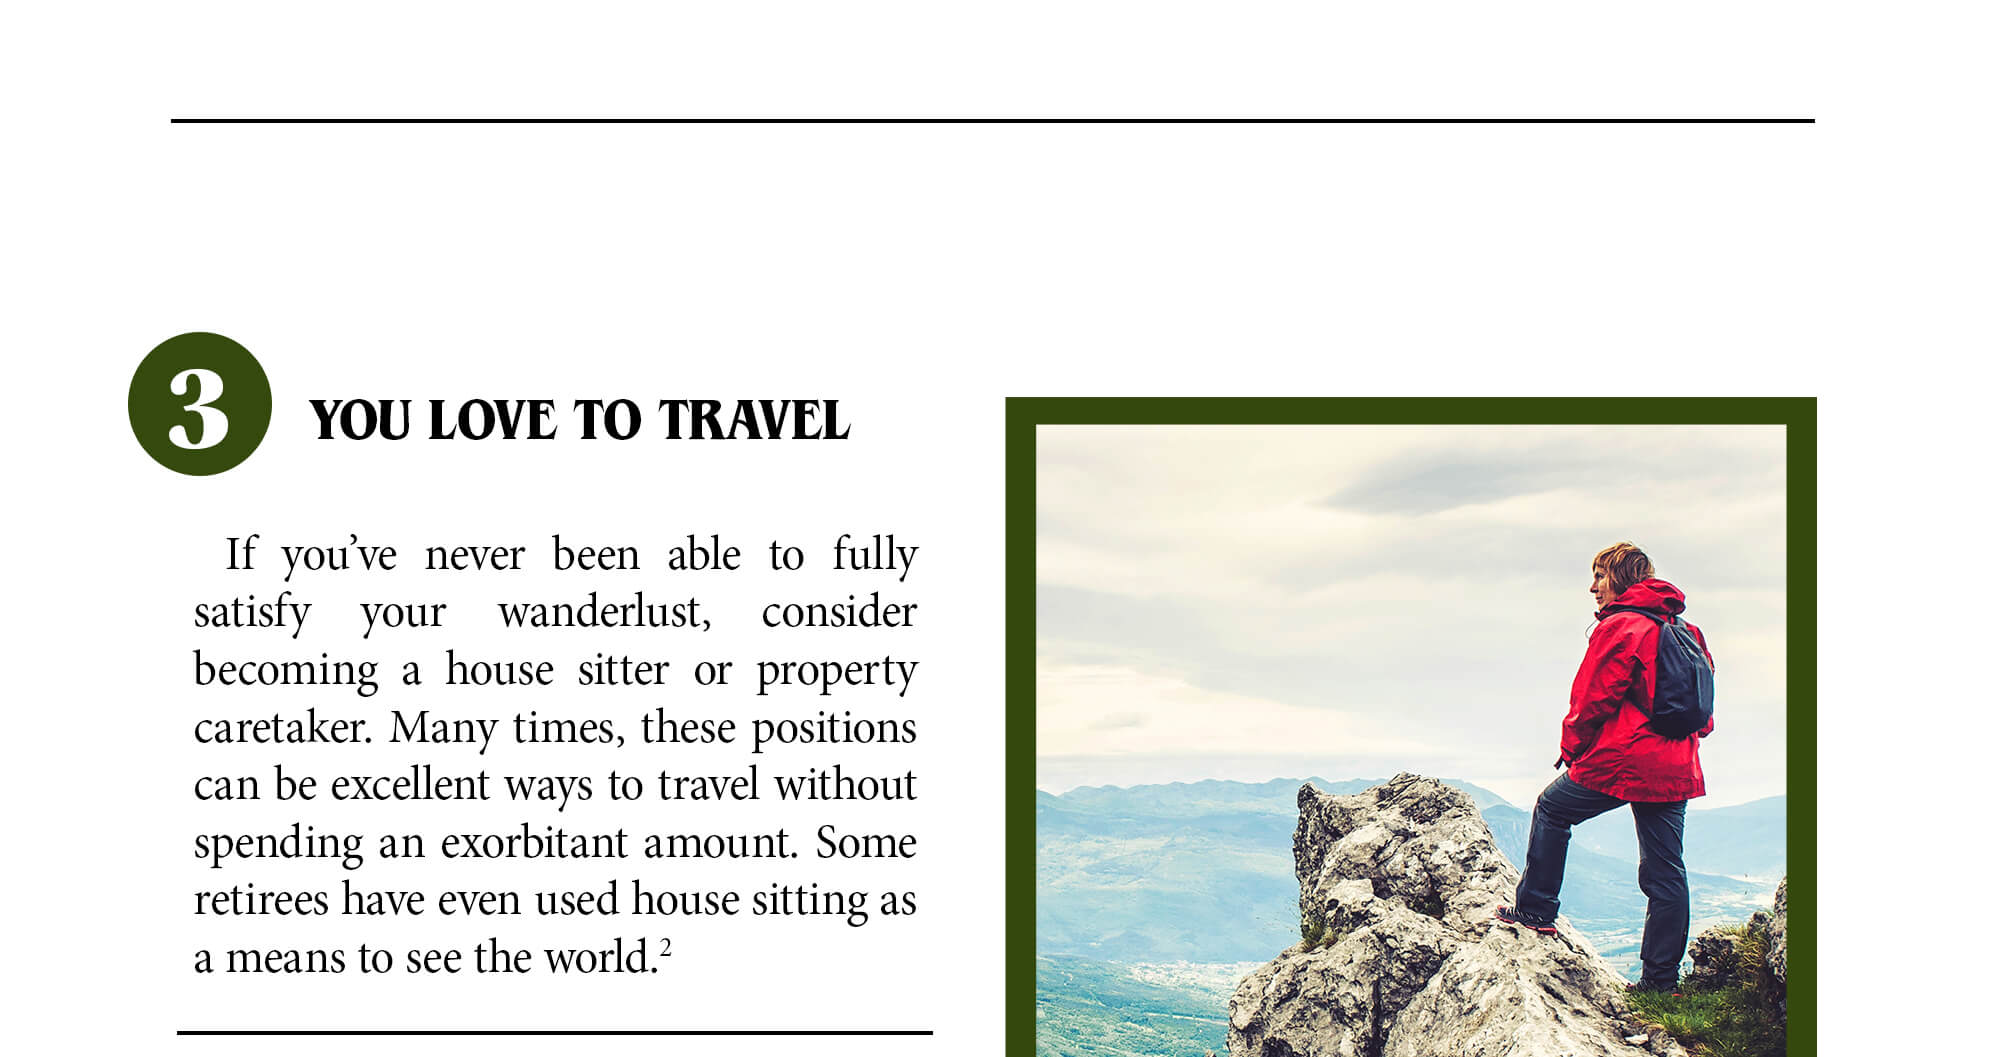 3. You love to travel. If you've never been able to fully satisfy your wanderlust, consider becoming a house sitter or property caretaker. Many times, these positions can be excellent ways to travel without spending an exorbitant amount. Some retirees have even used house sitting as a means to see the world. Source 2.